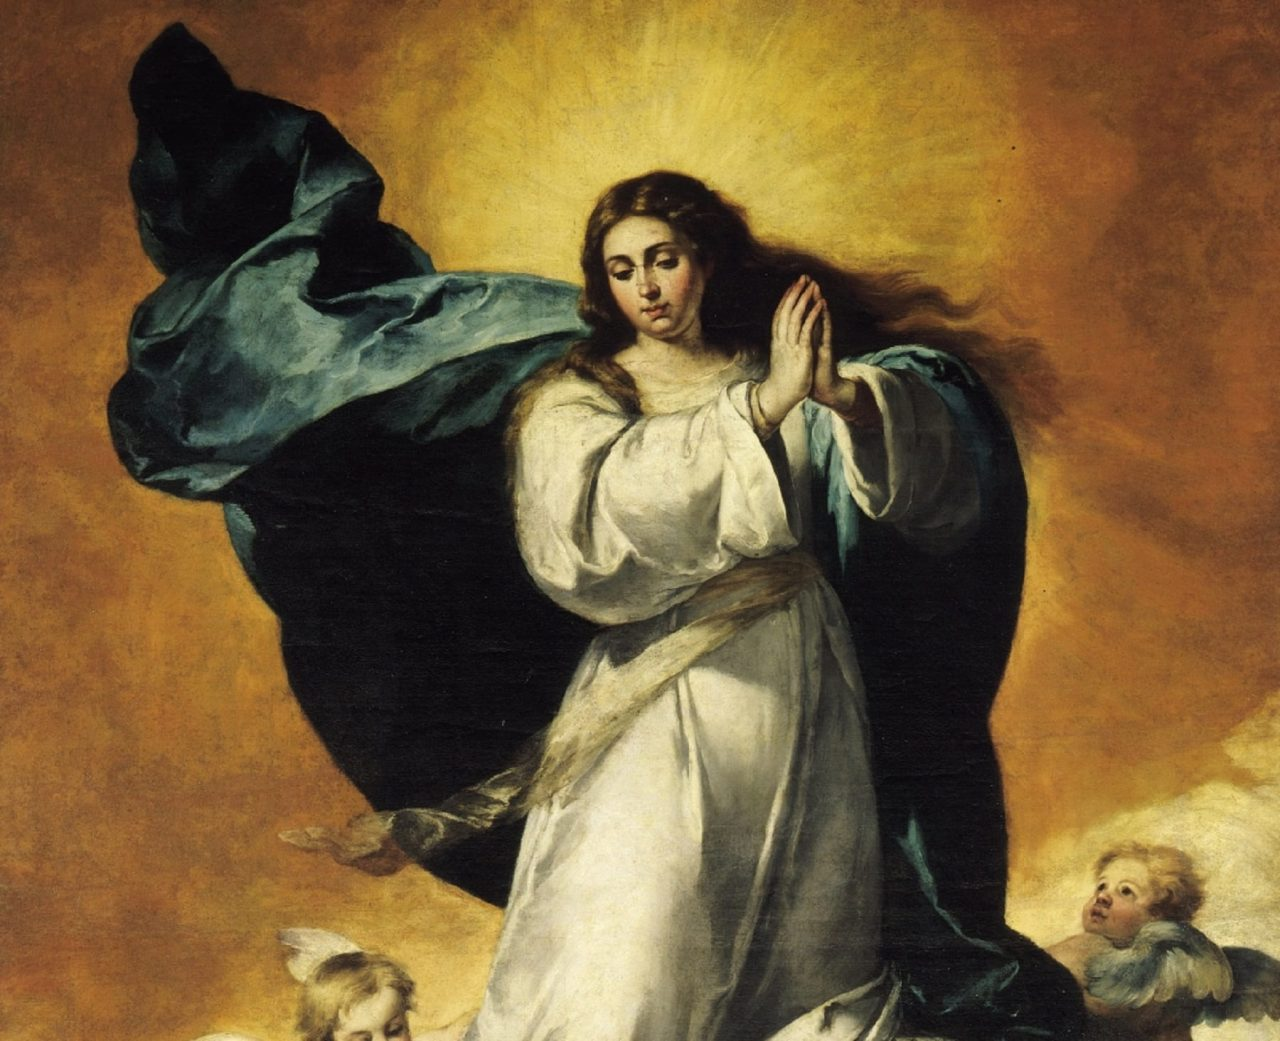 7 Things You Wish To Know About The Immaculate Conception